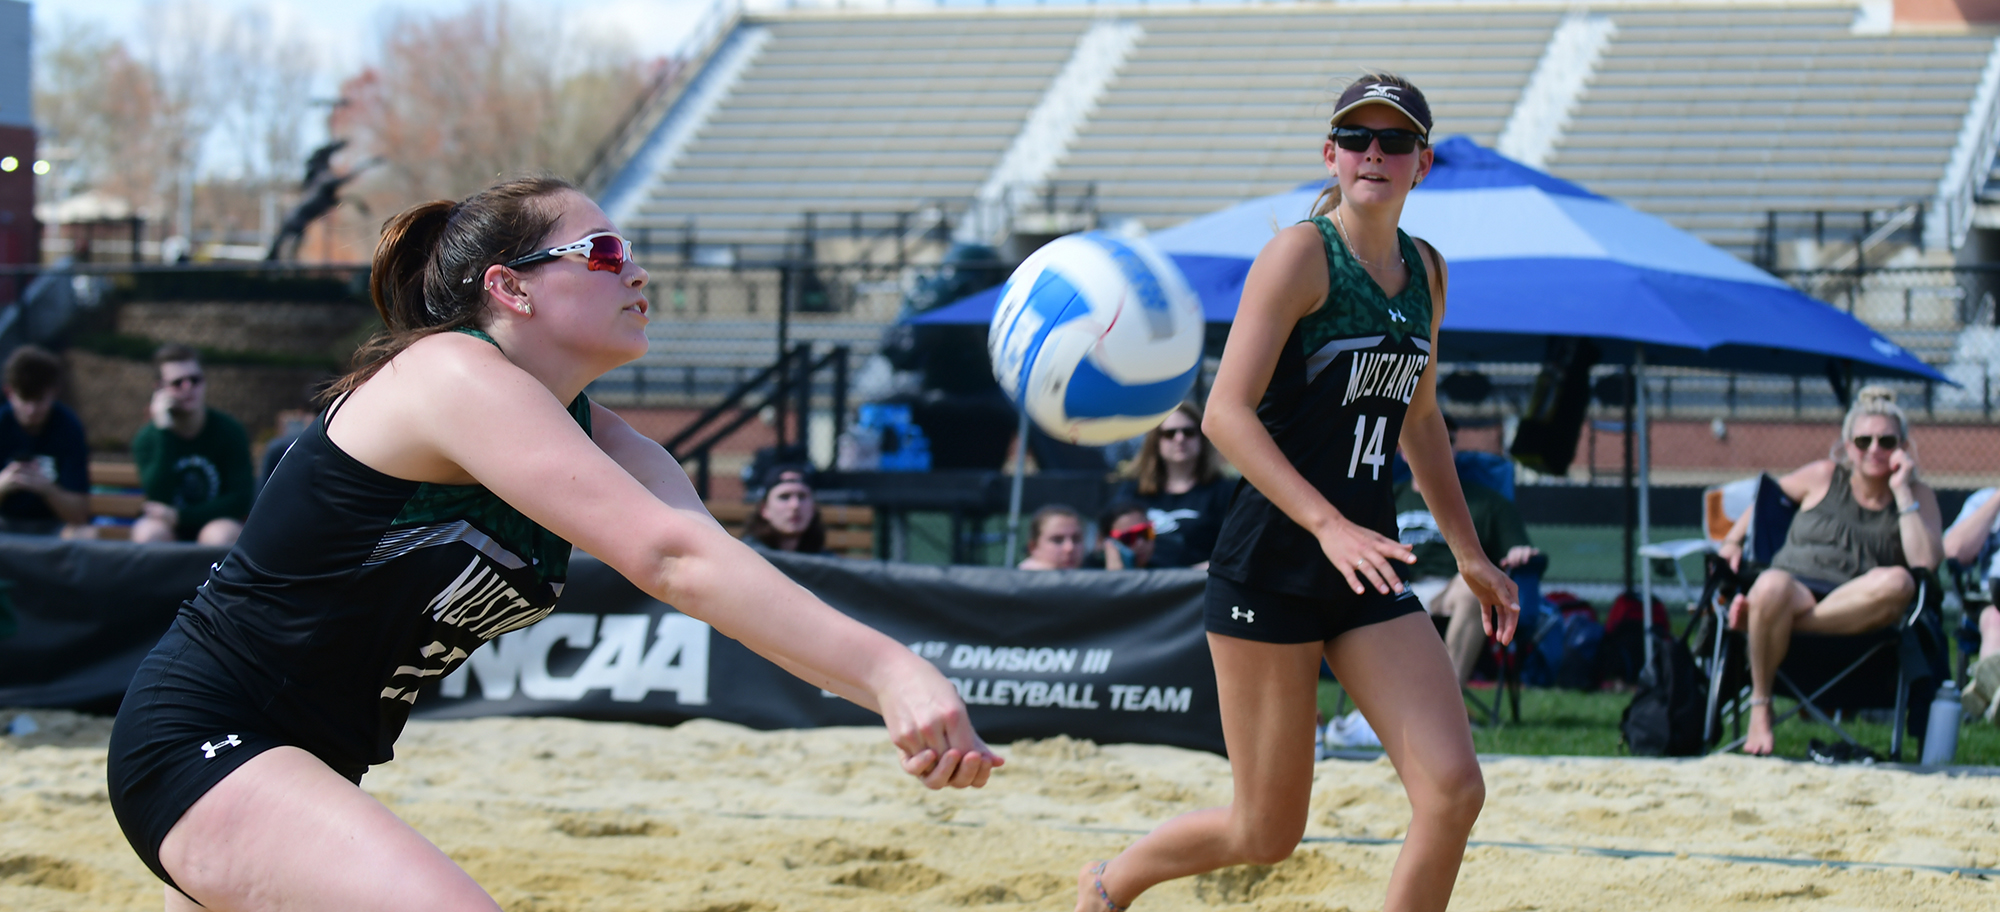 Mustangs Move to Silver Bracket at Small College Championship